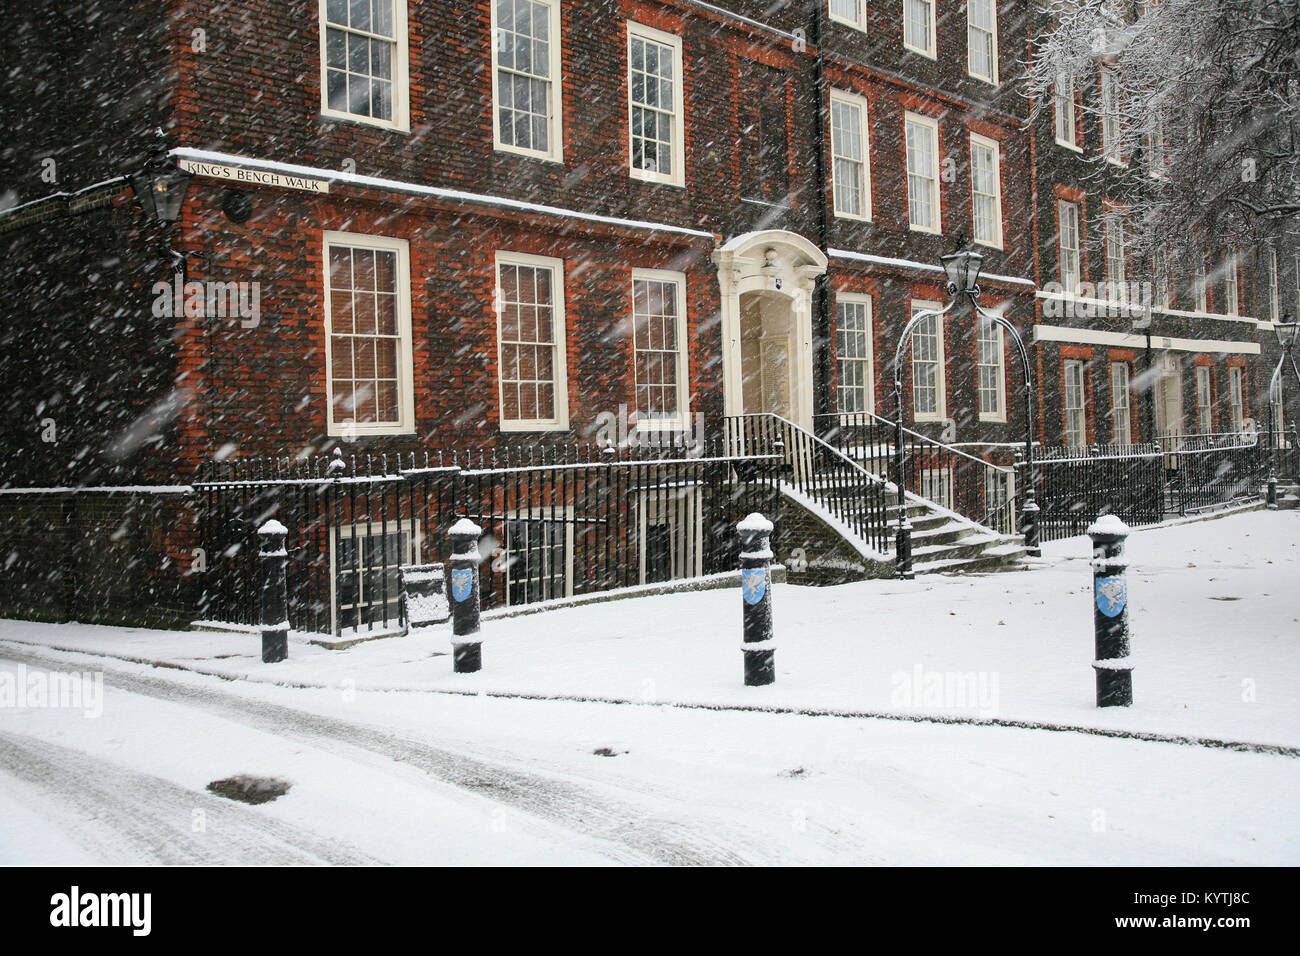 Inner Temple, Kings Bench Walk London - Stock Image